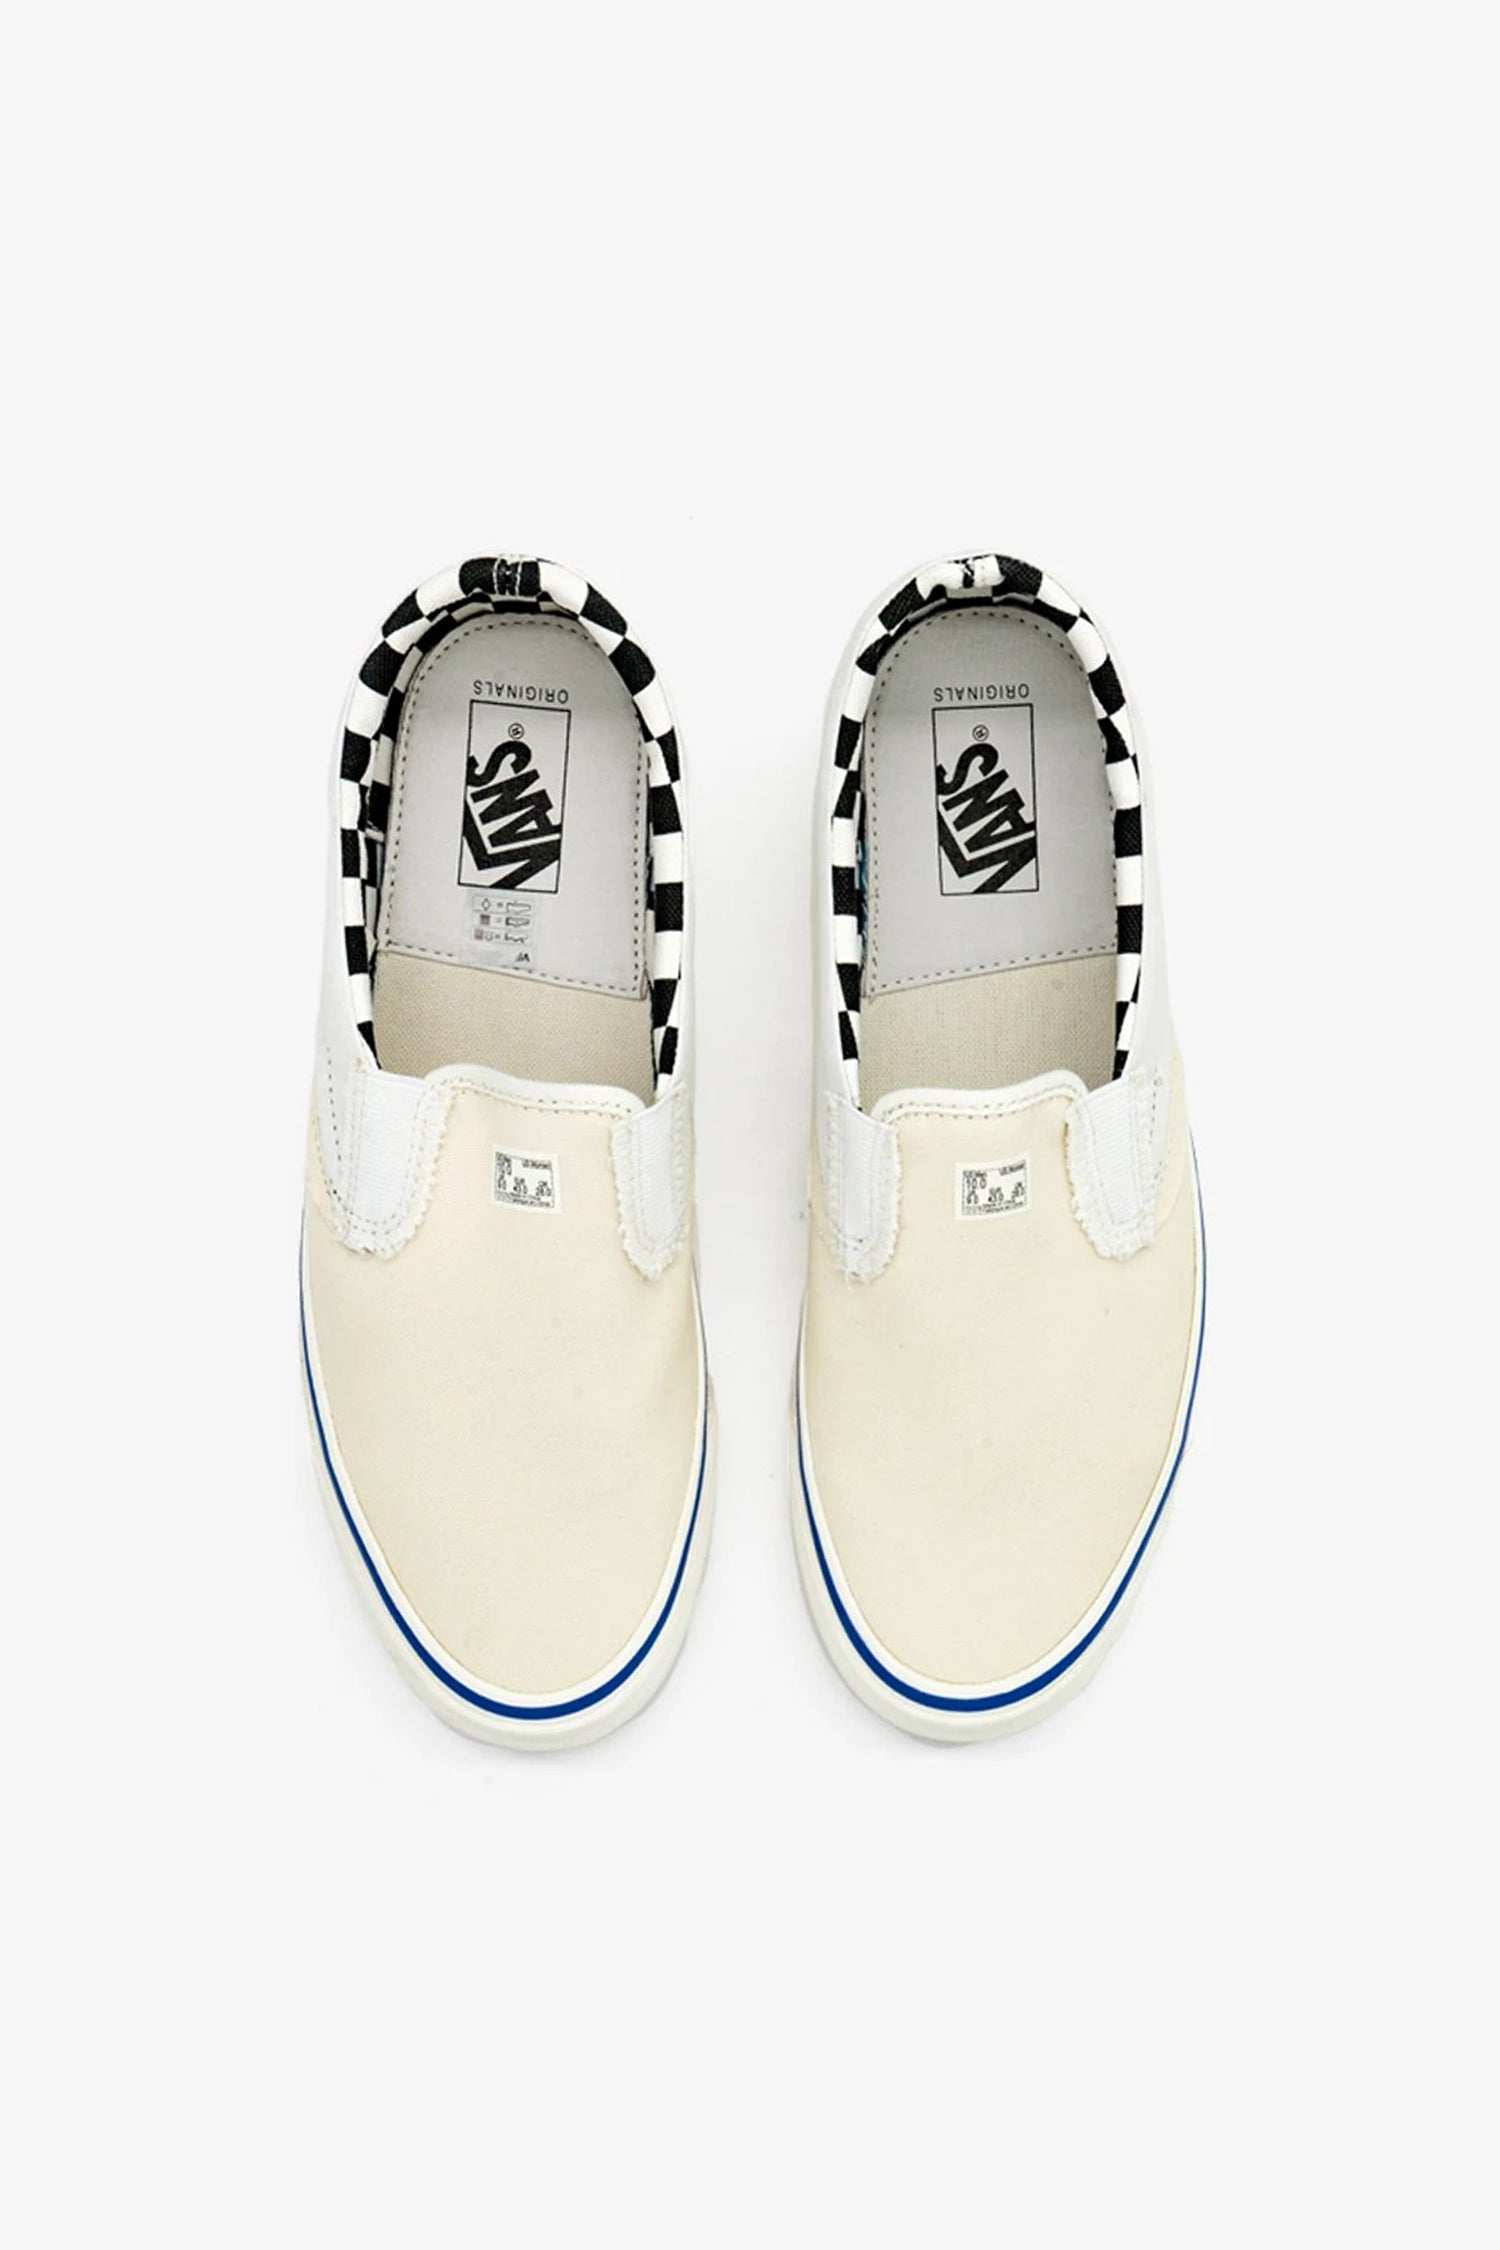 FRAME - VANS Vault UA OG Classic Slip-On LX Inside Out